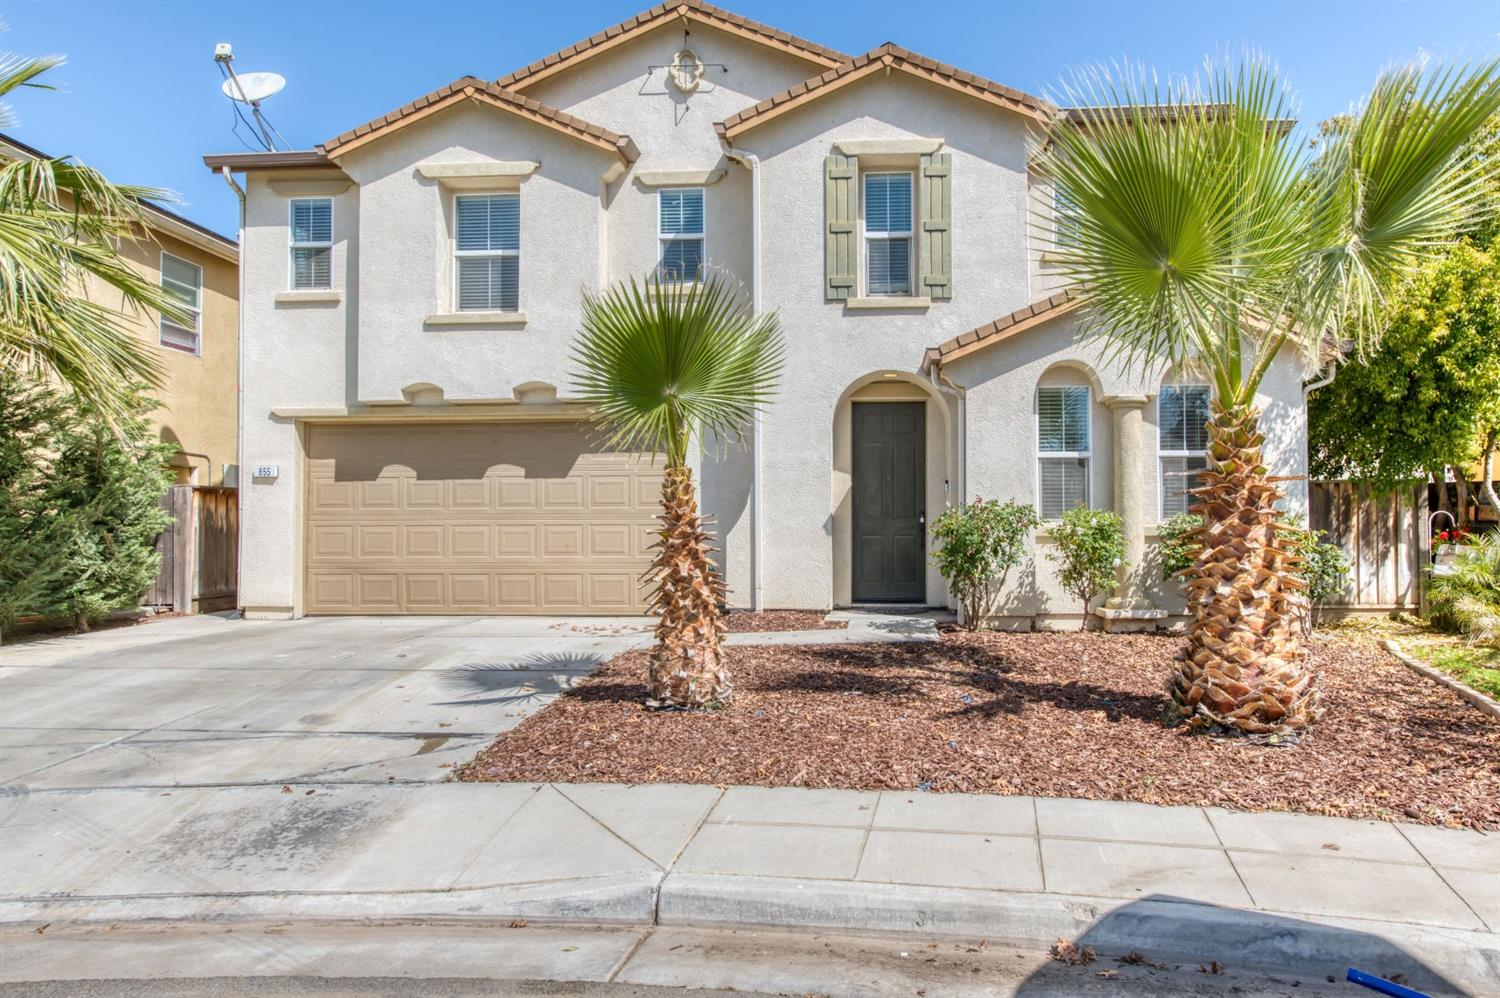 Photo of 855 Pear Court, Madera, CA 93638